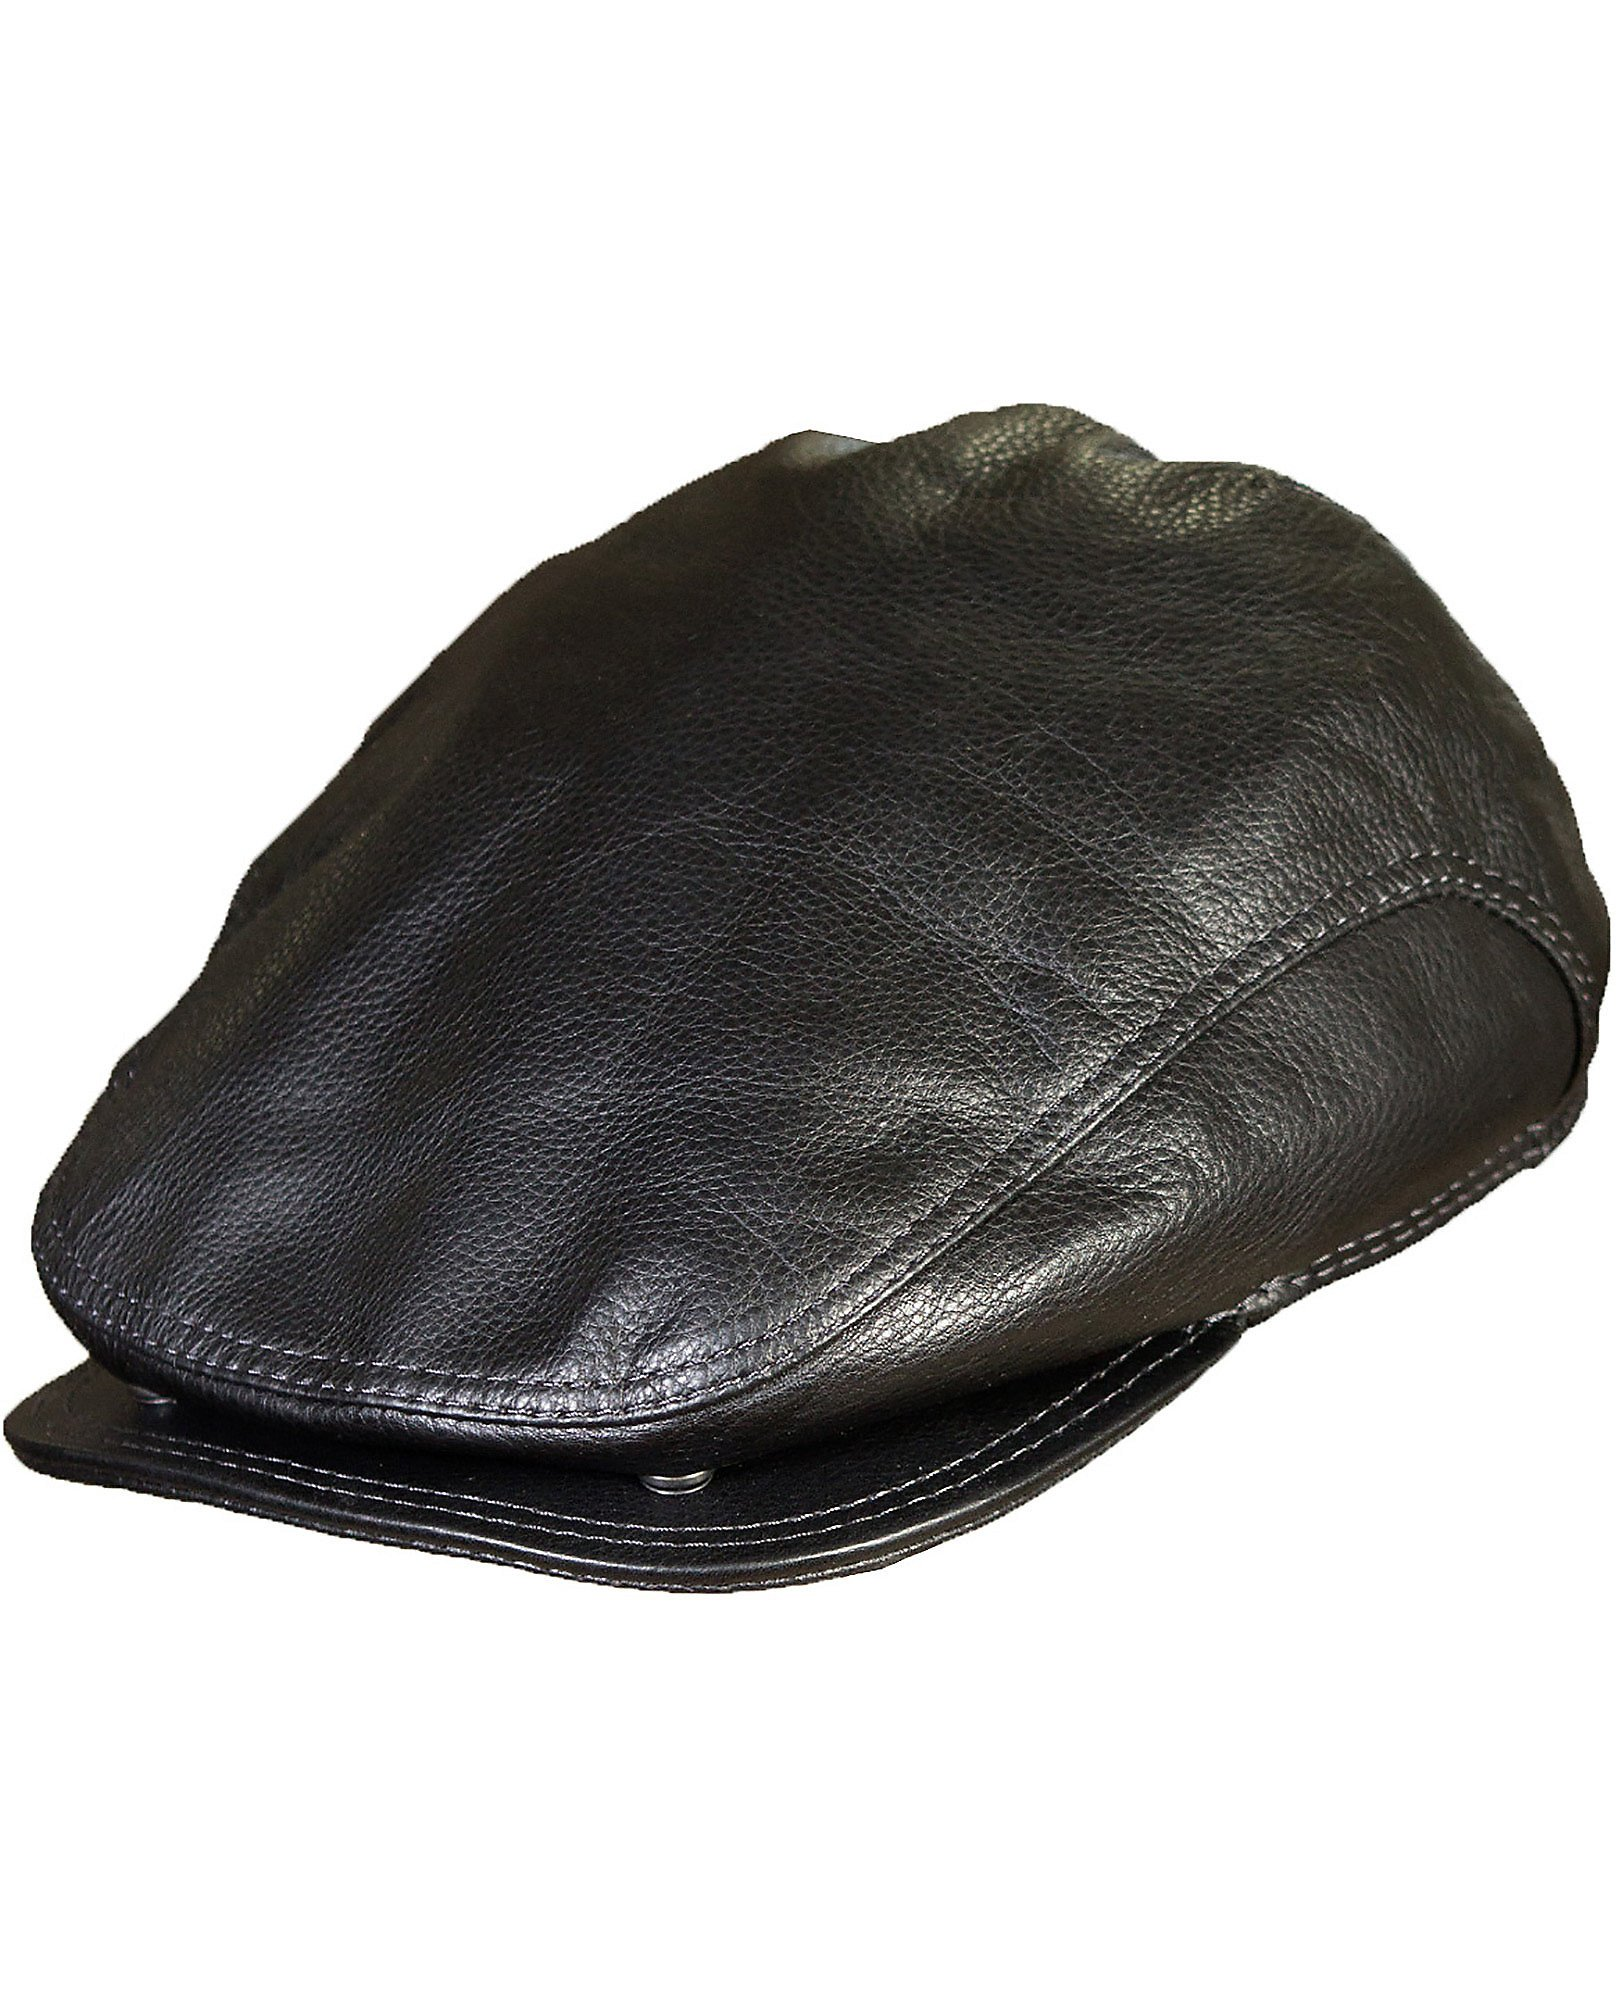 Overland Sheepskin Co. Allen Leather IVY Cap, Black, Size Large (7 1/4-7 3/8)